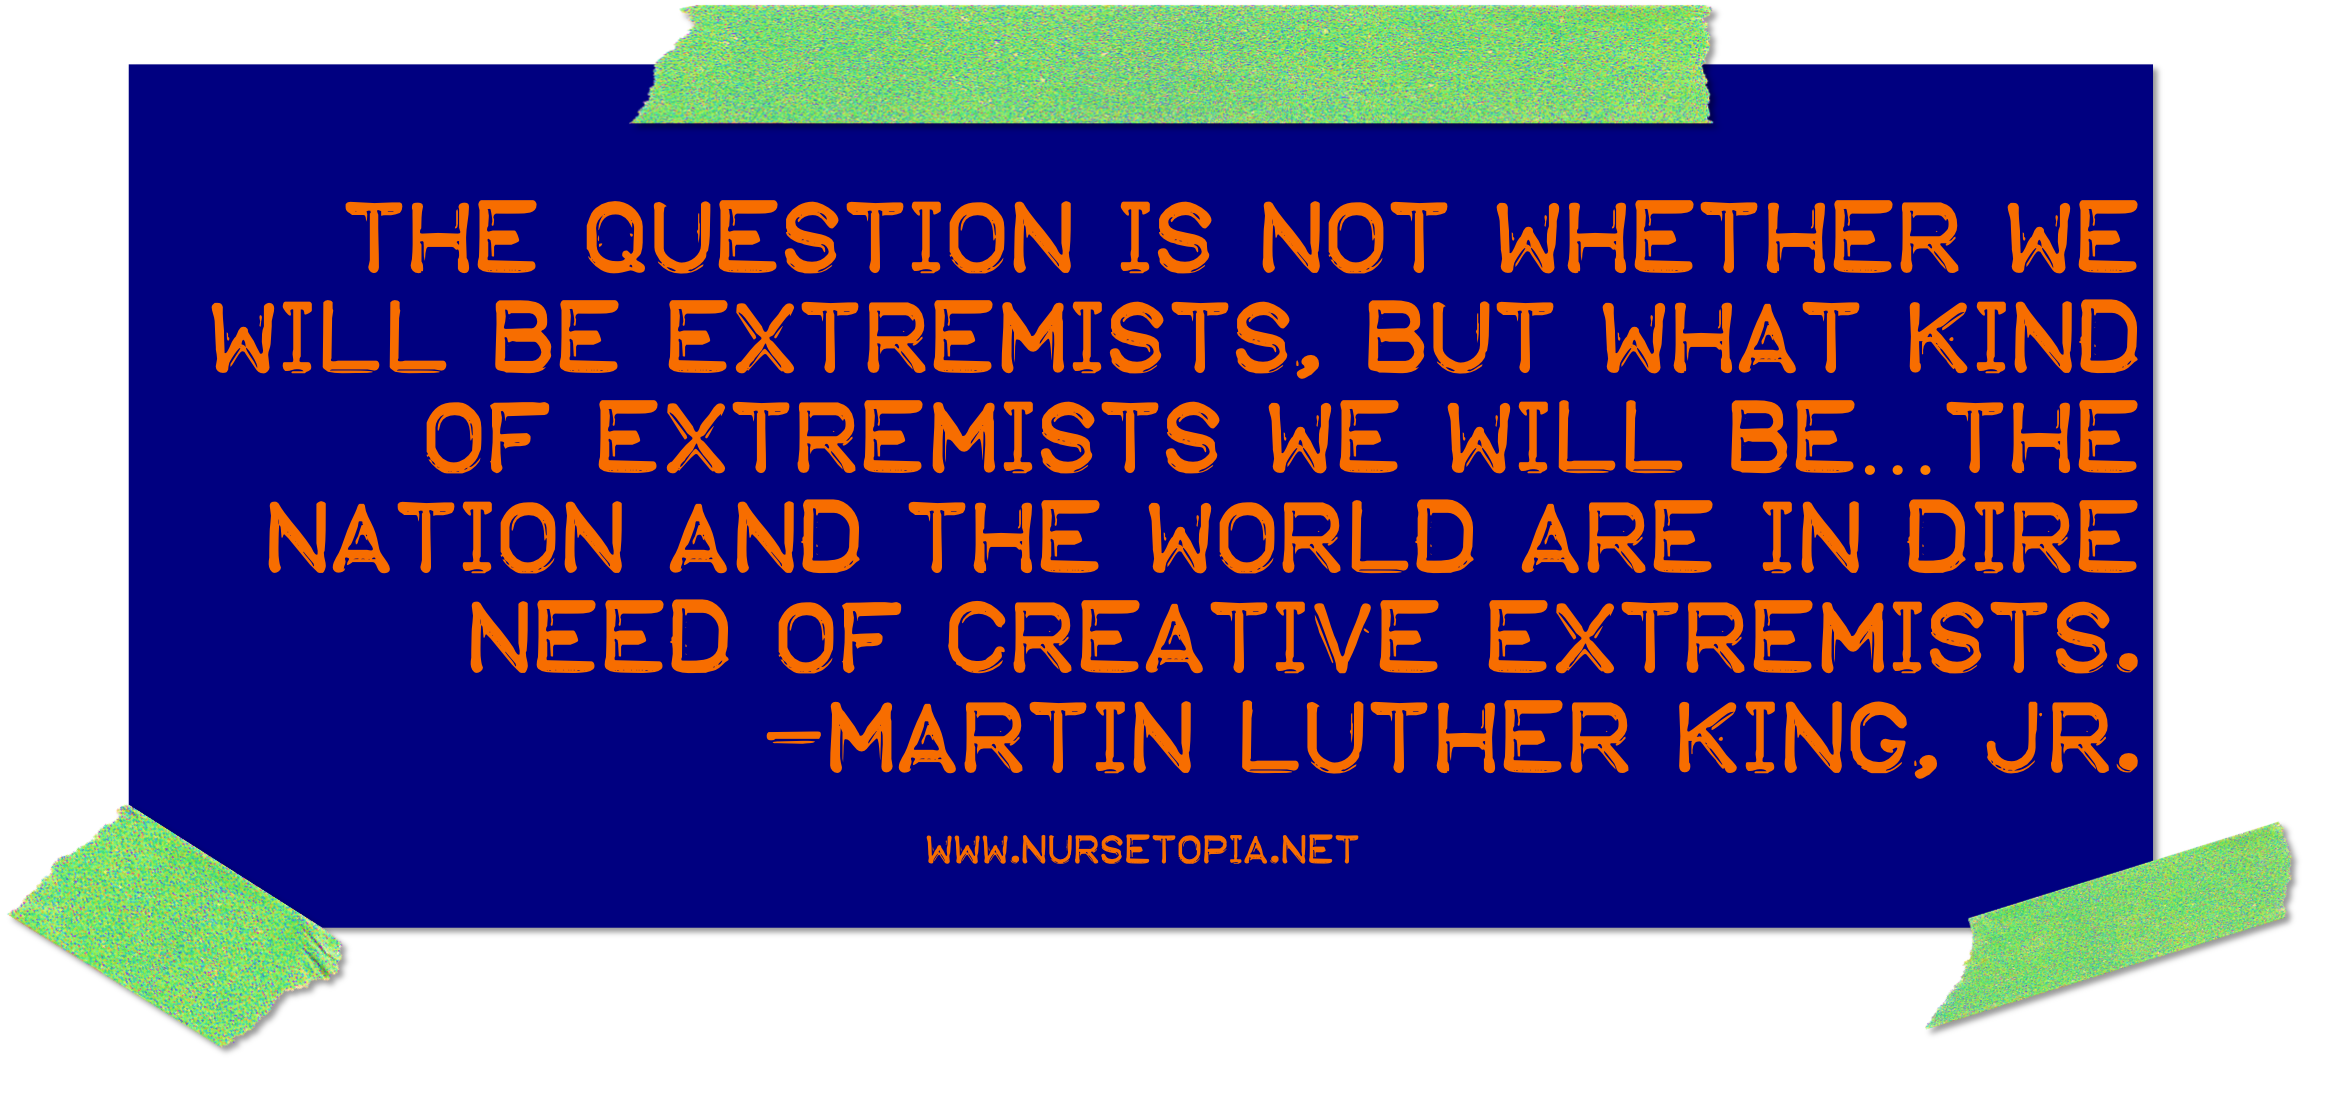 MLK_CreativeExtremists_Nursetopia